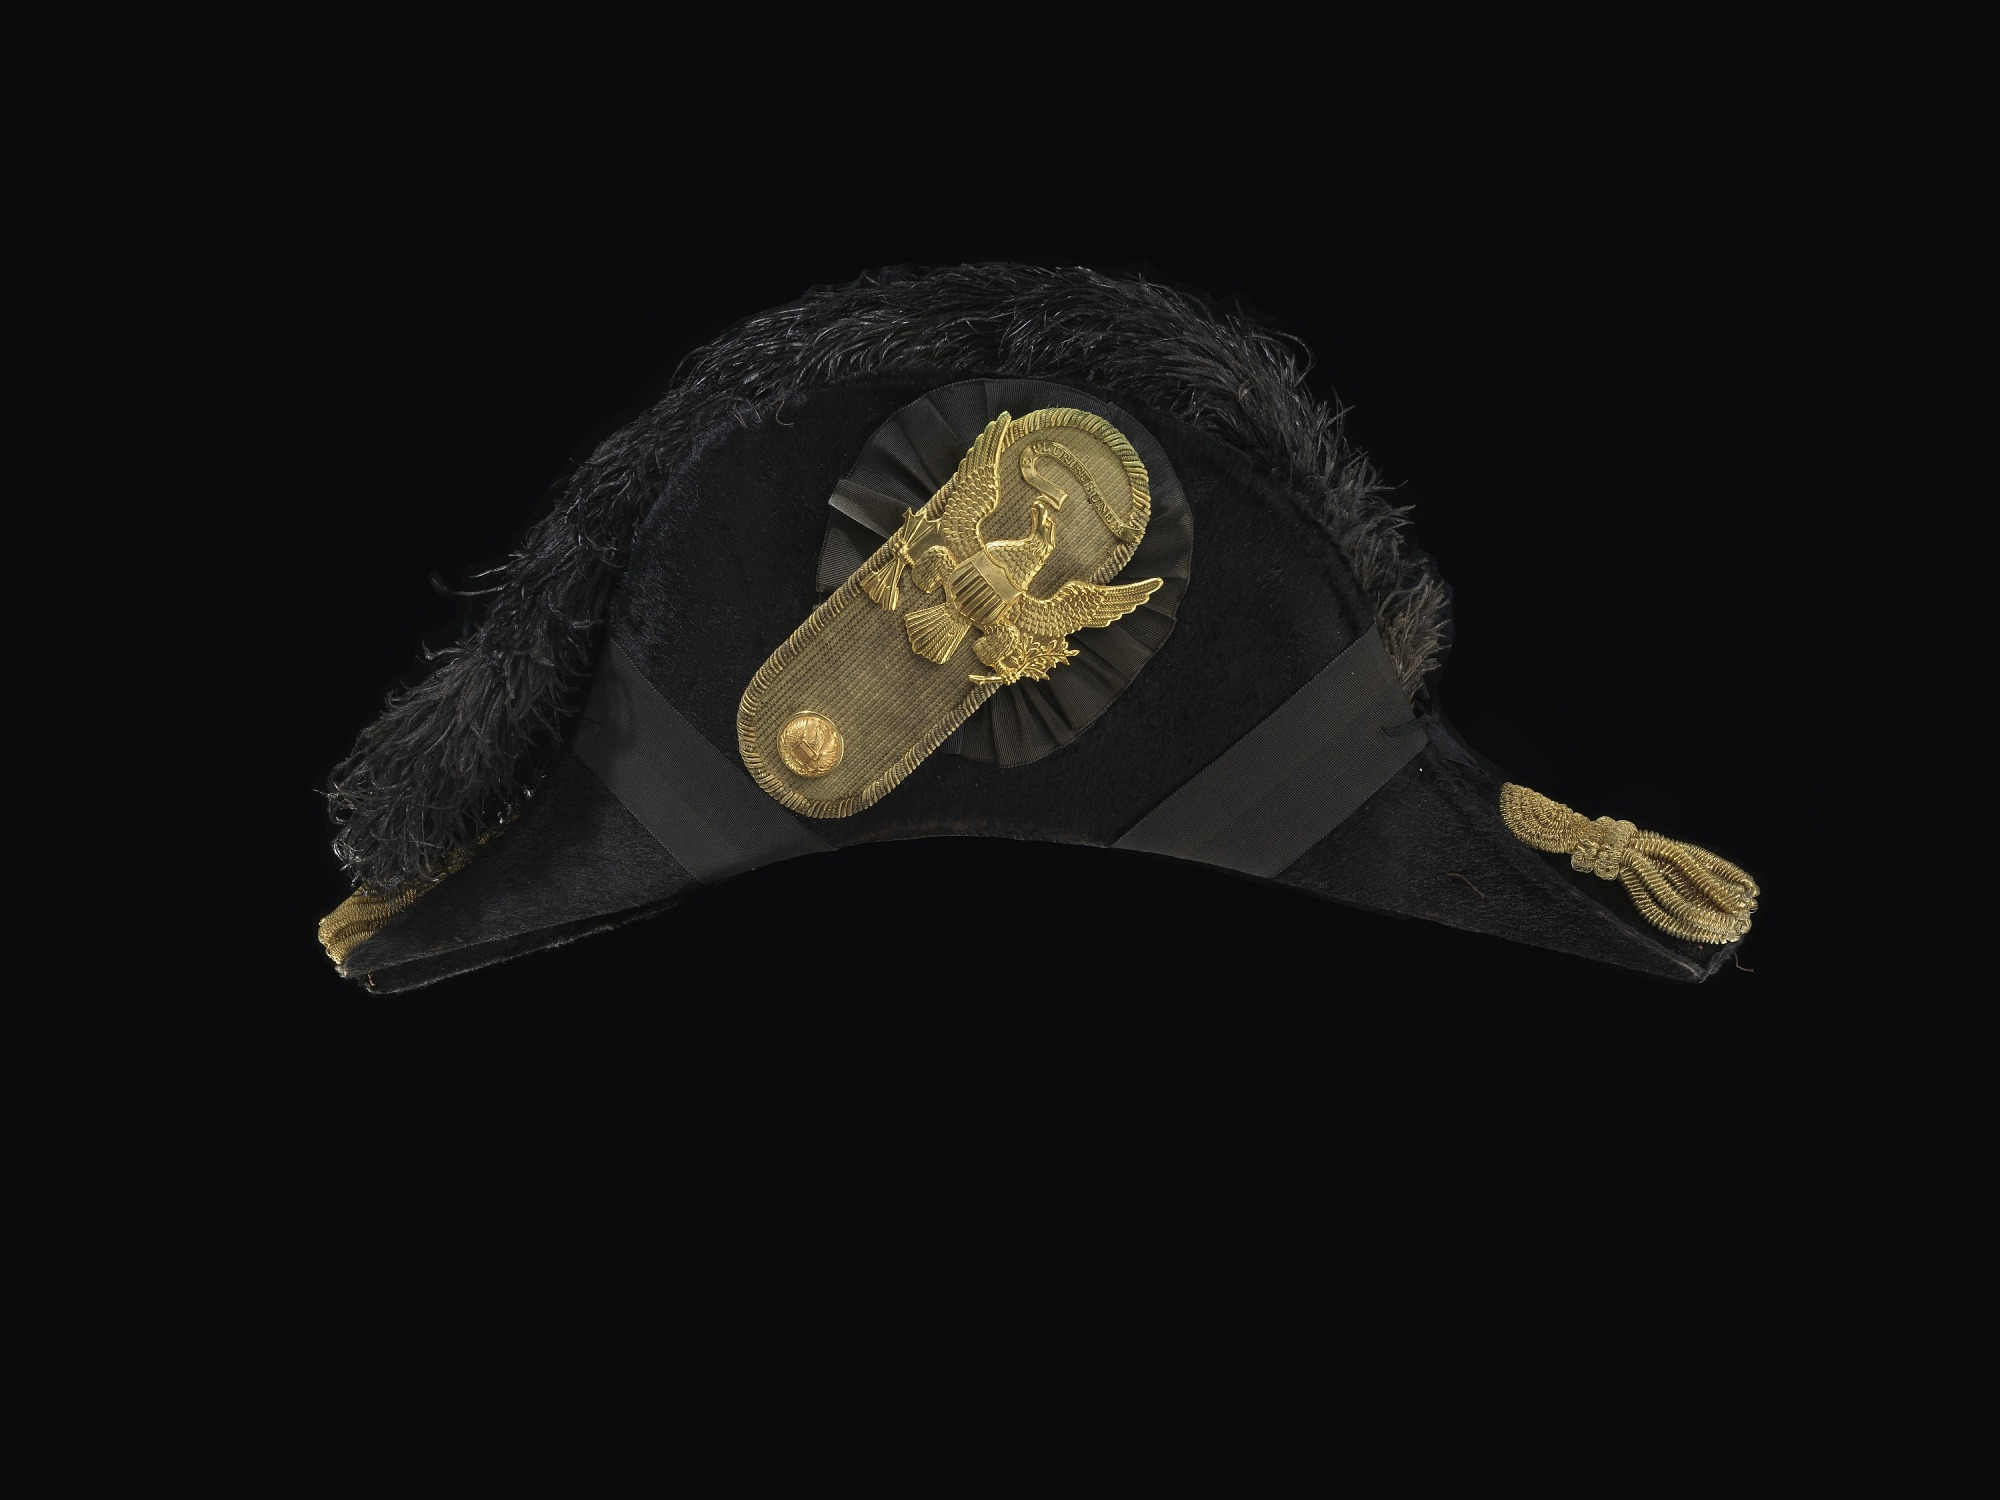 images for U.S. Army Officer's Chapeau, General McClellan